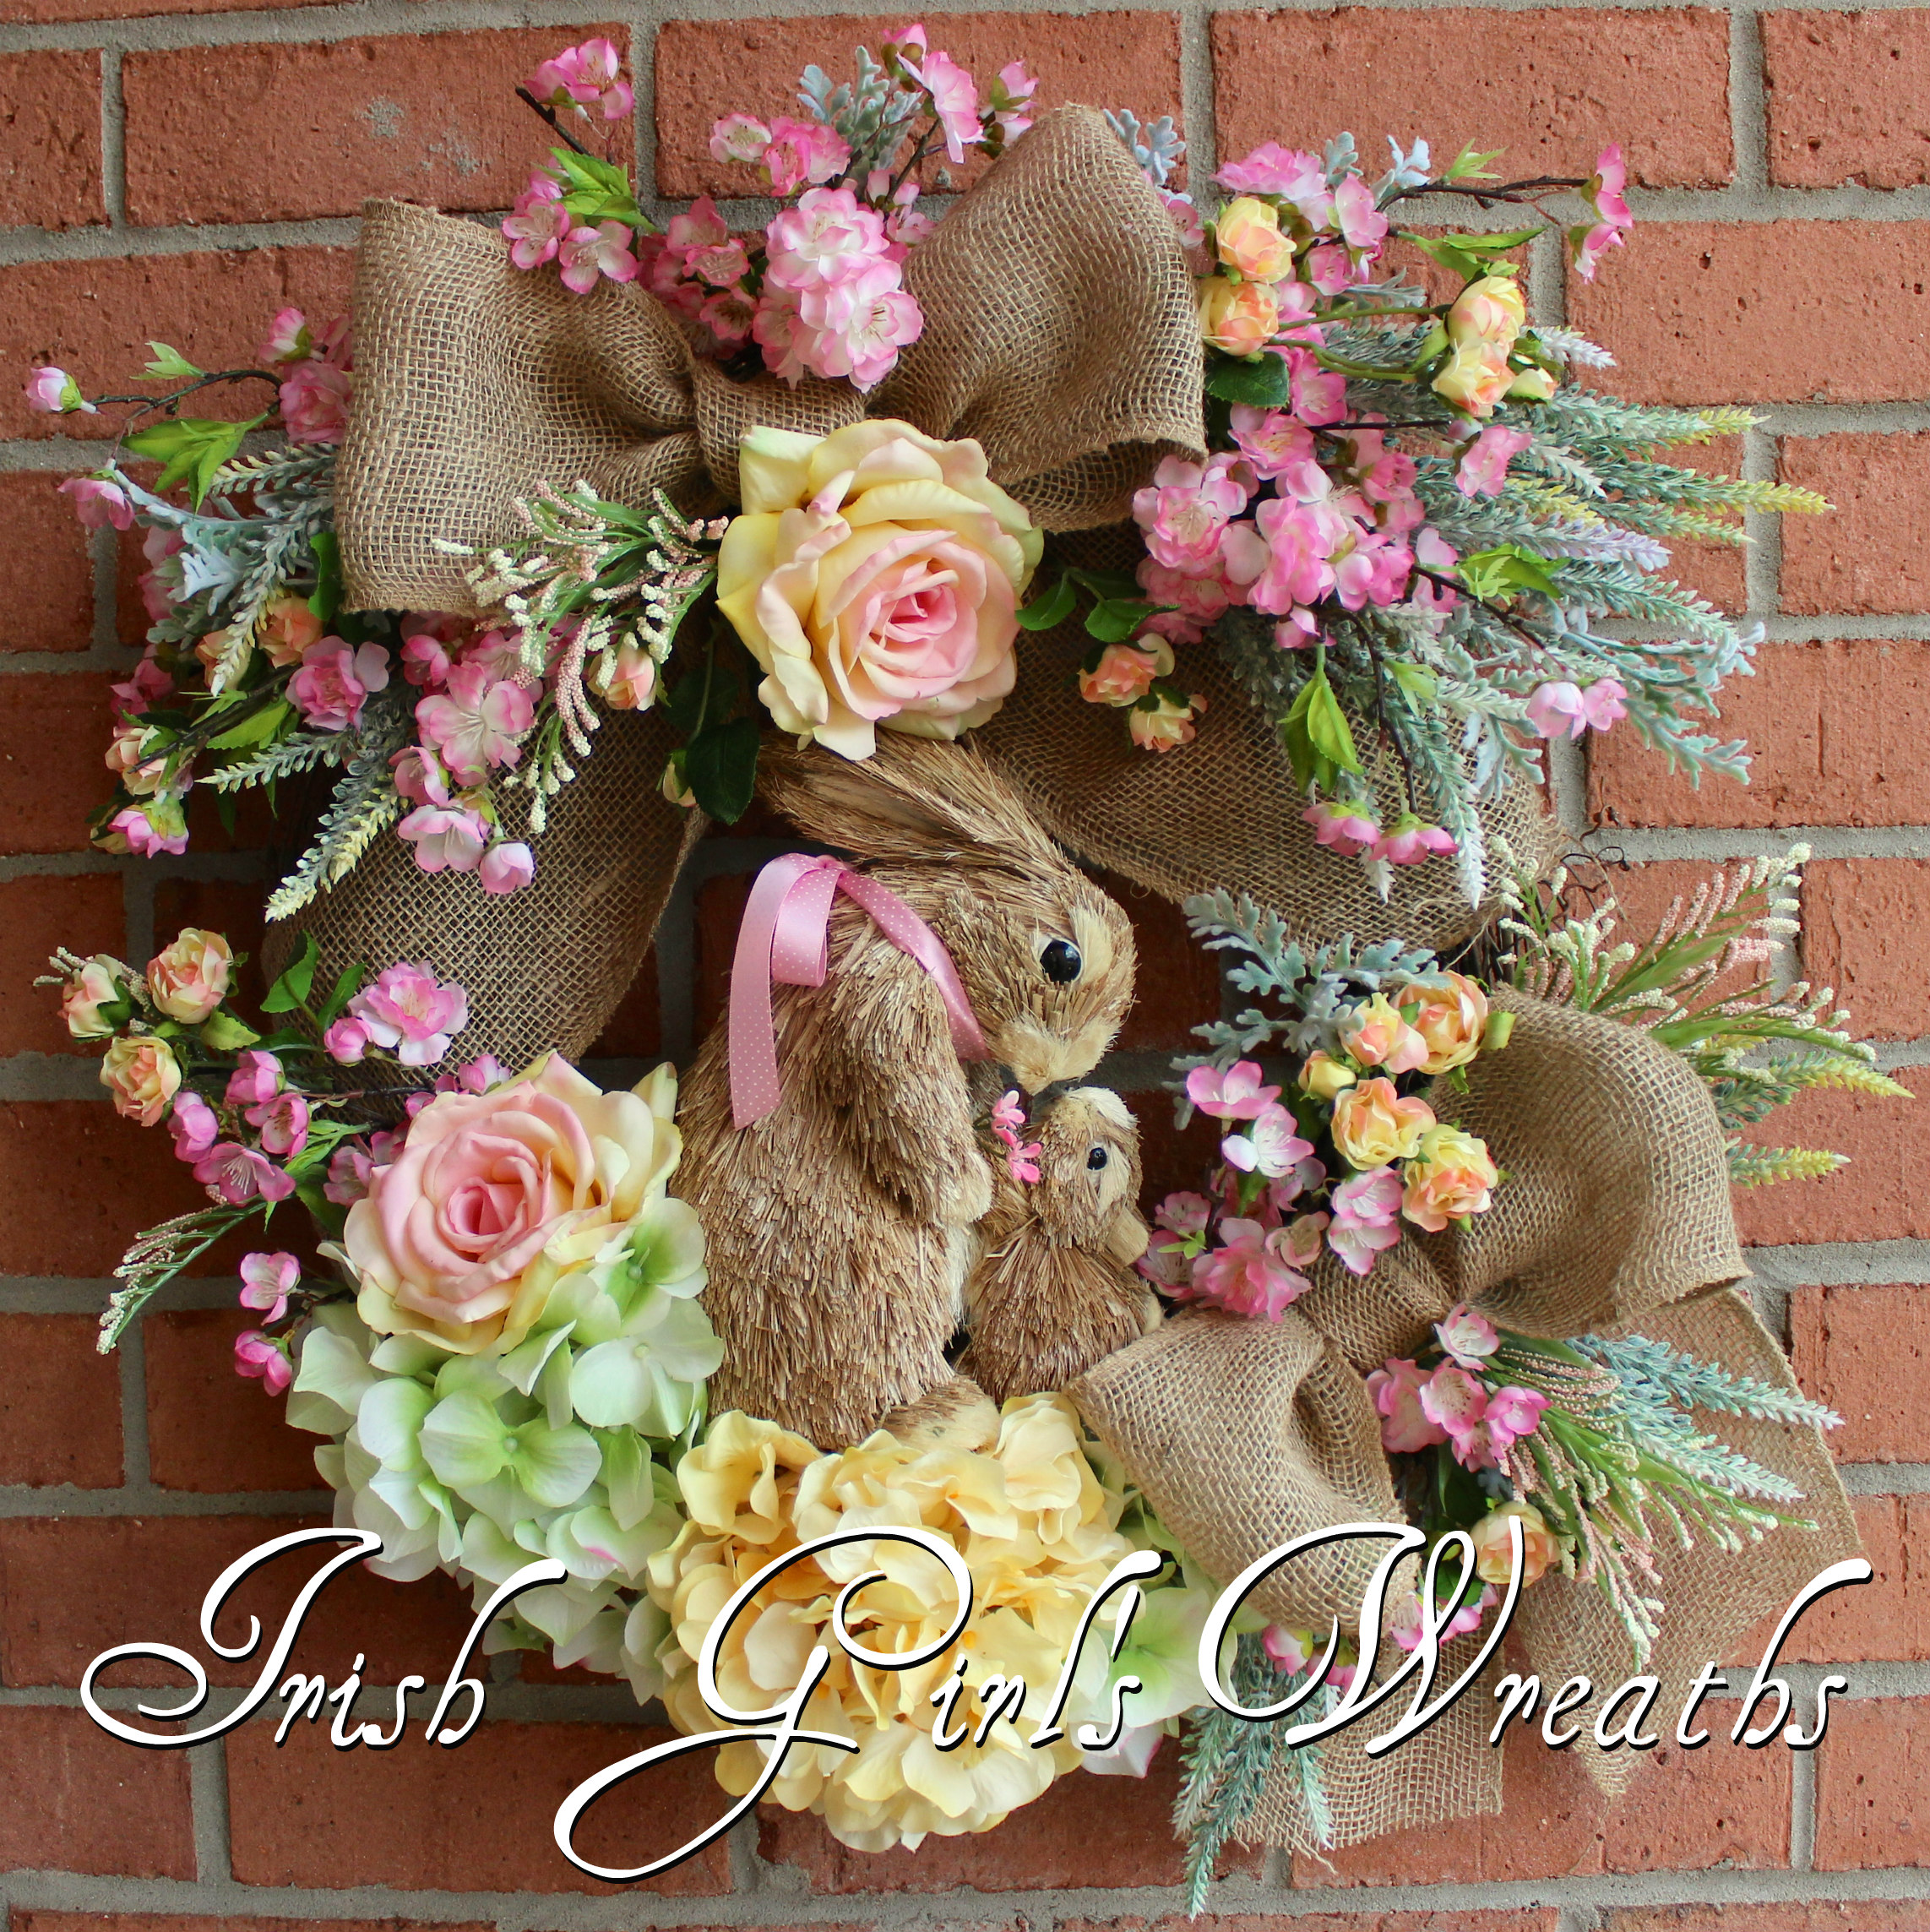 Pink & Yellow Spring Bunny Rabbits Wreath, Easter Floral Wreath